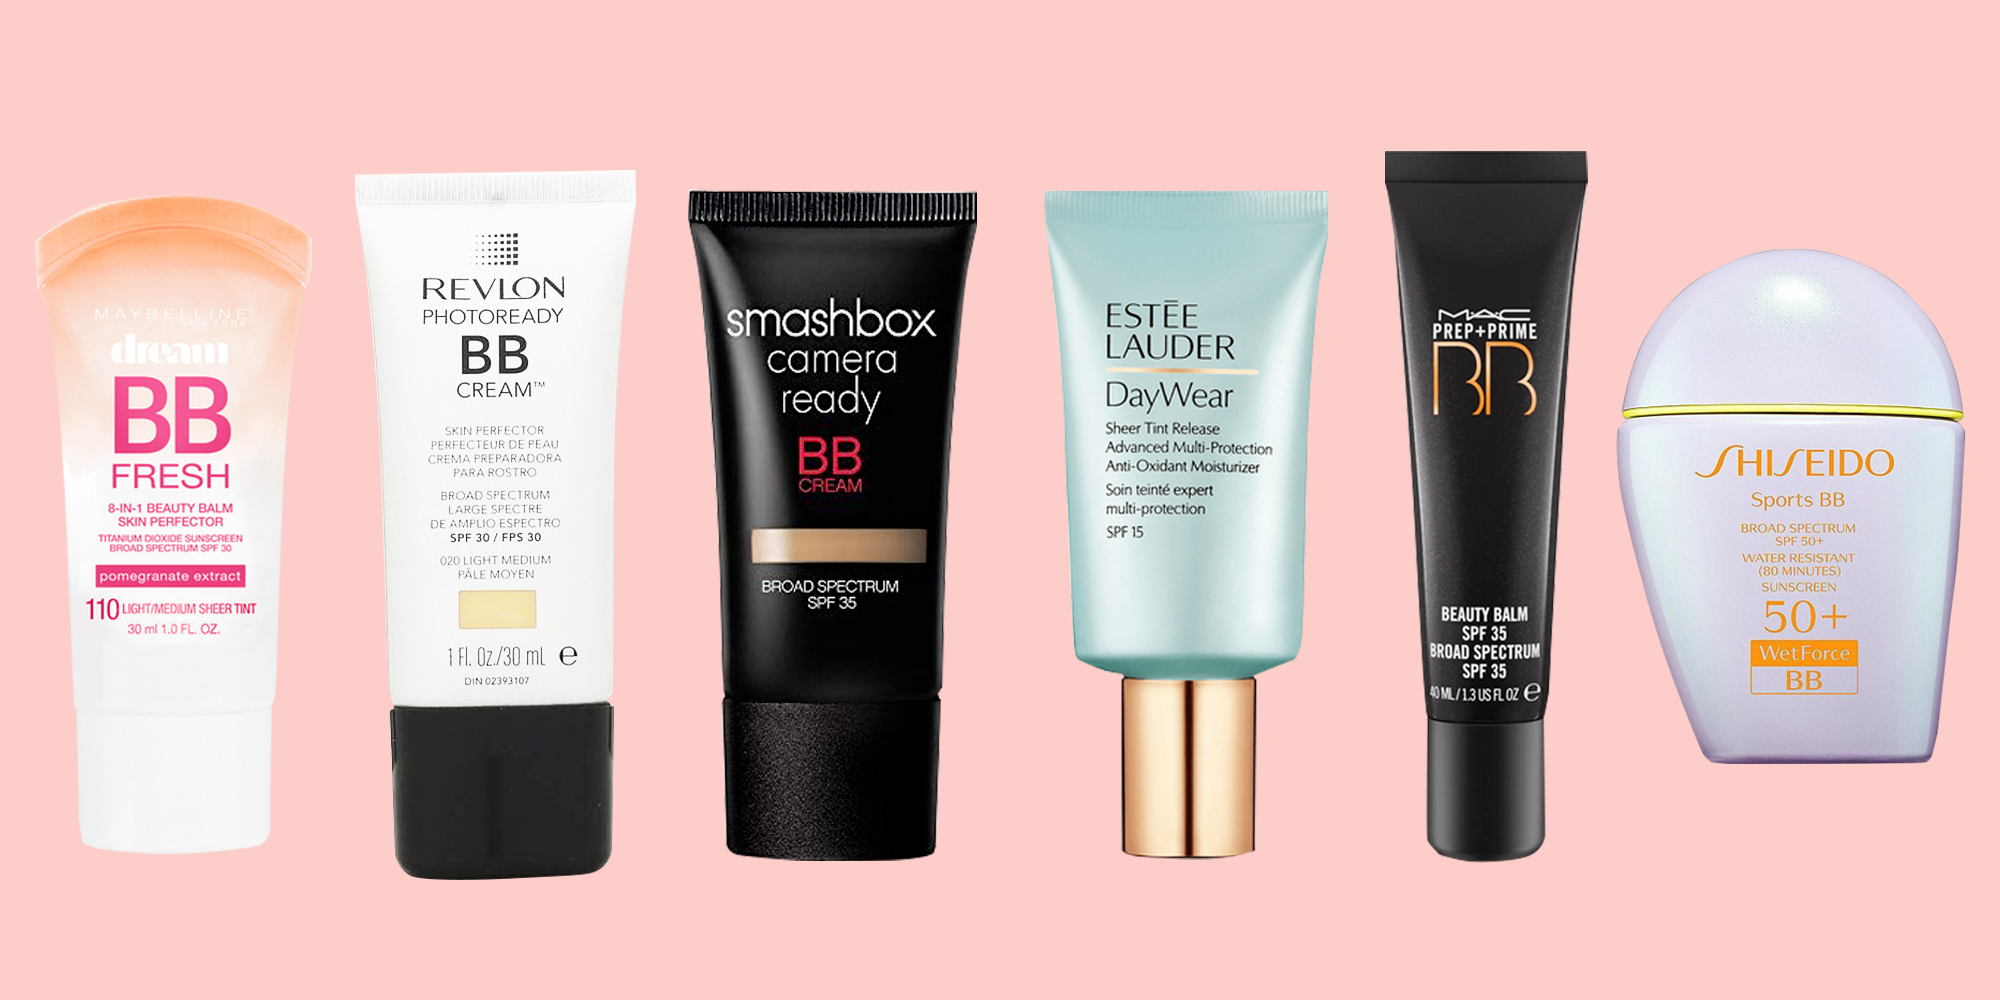 10 Best BB Creams 2020 - Top BB Creams for Every Skin Type